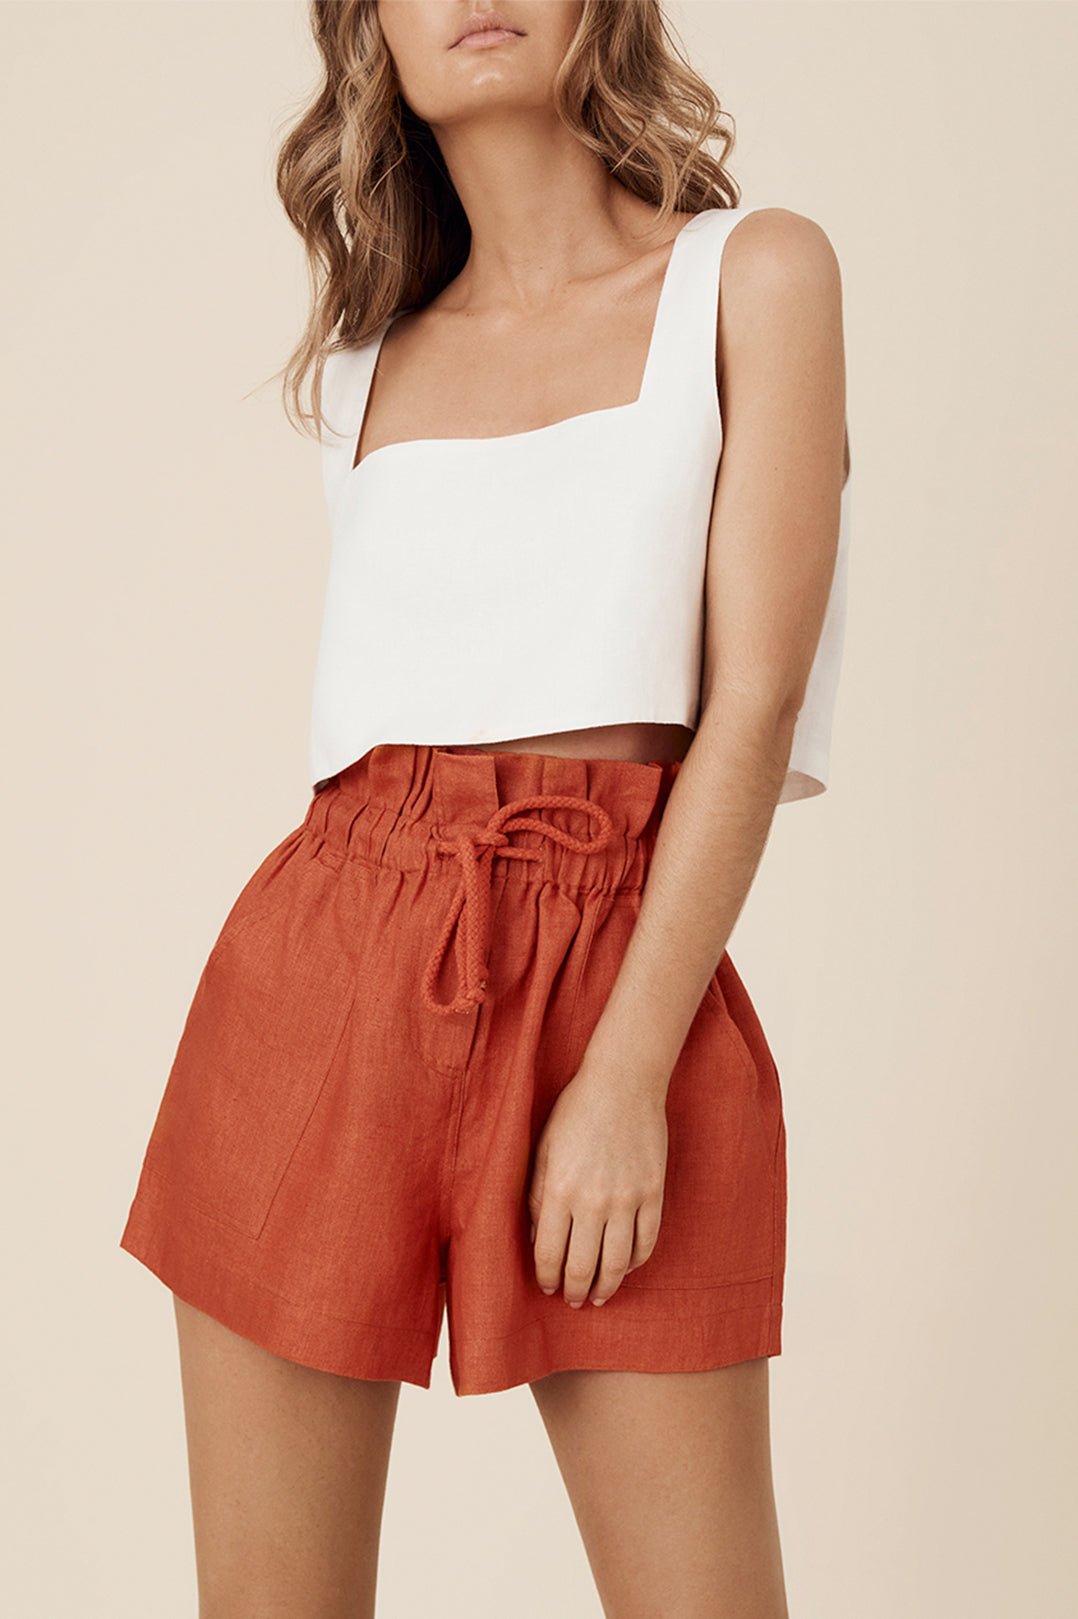 ZURI SHORT - DESERT RED